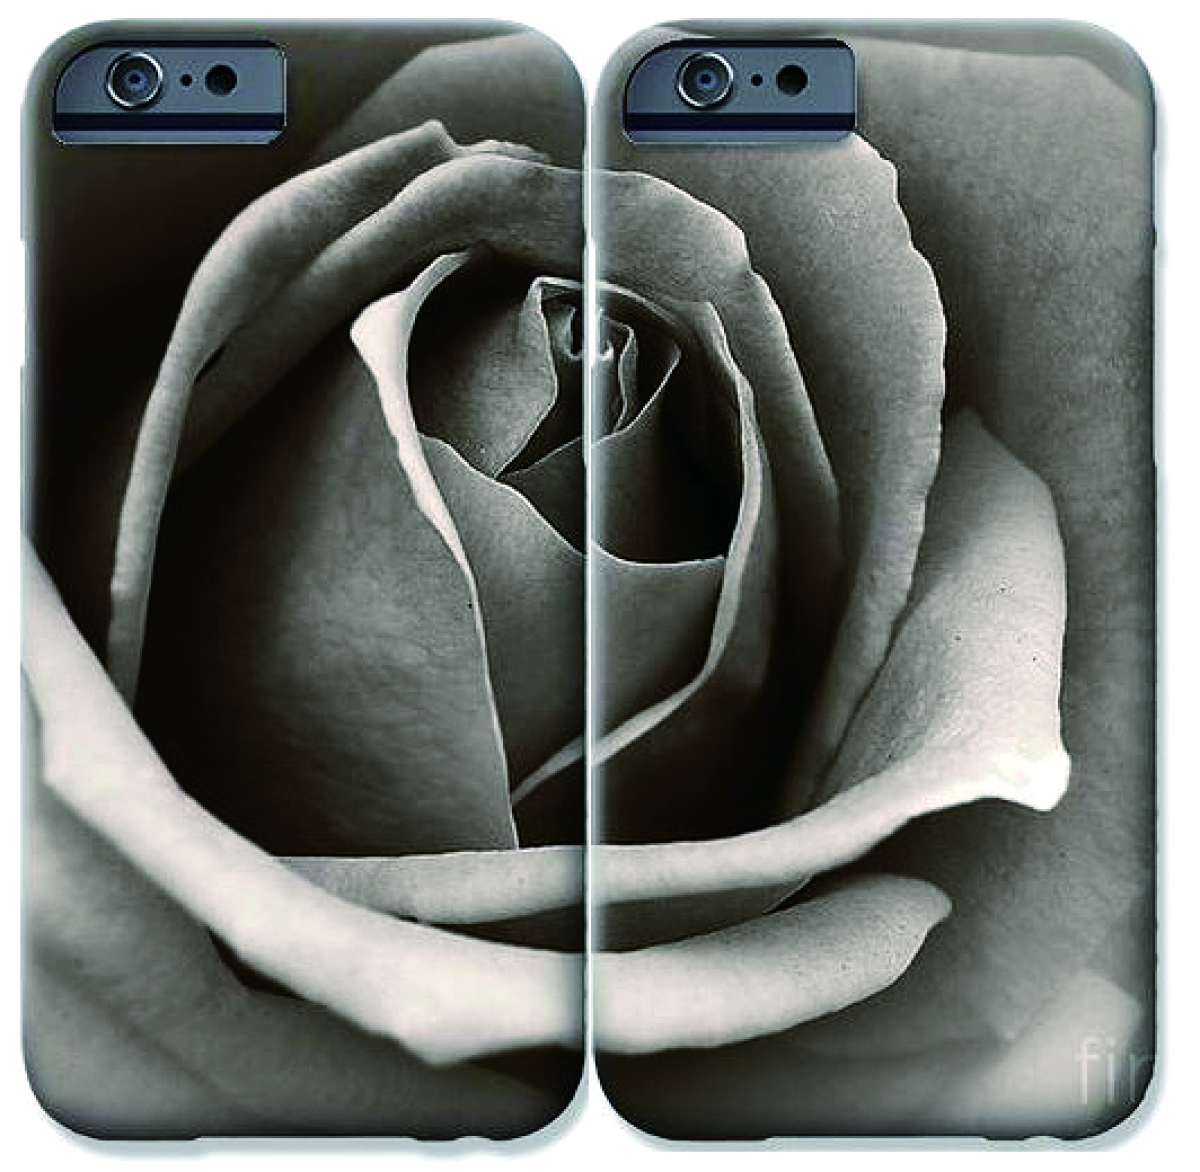 ART phone cases for two (large view)